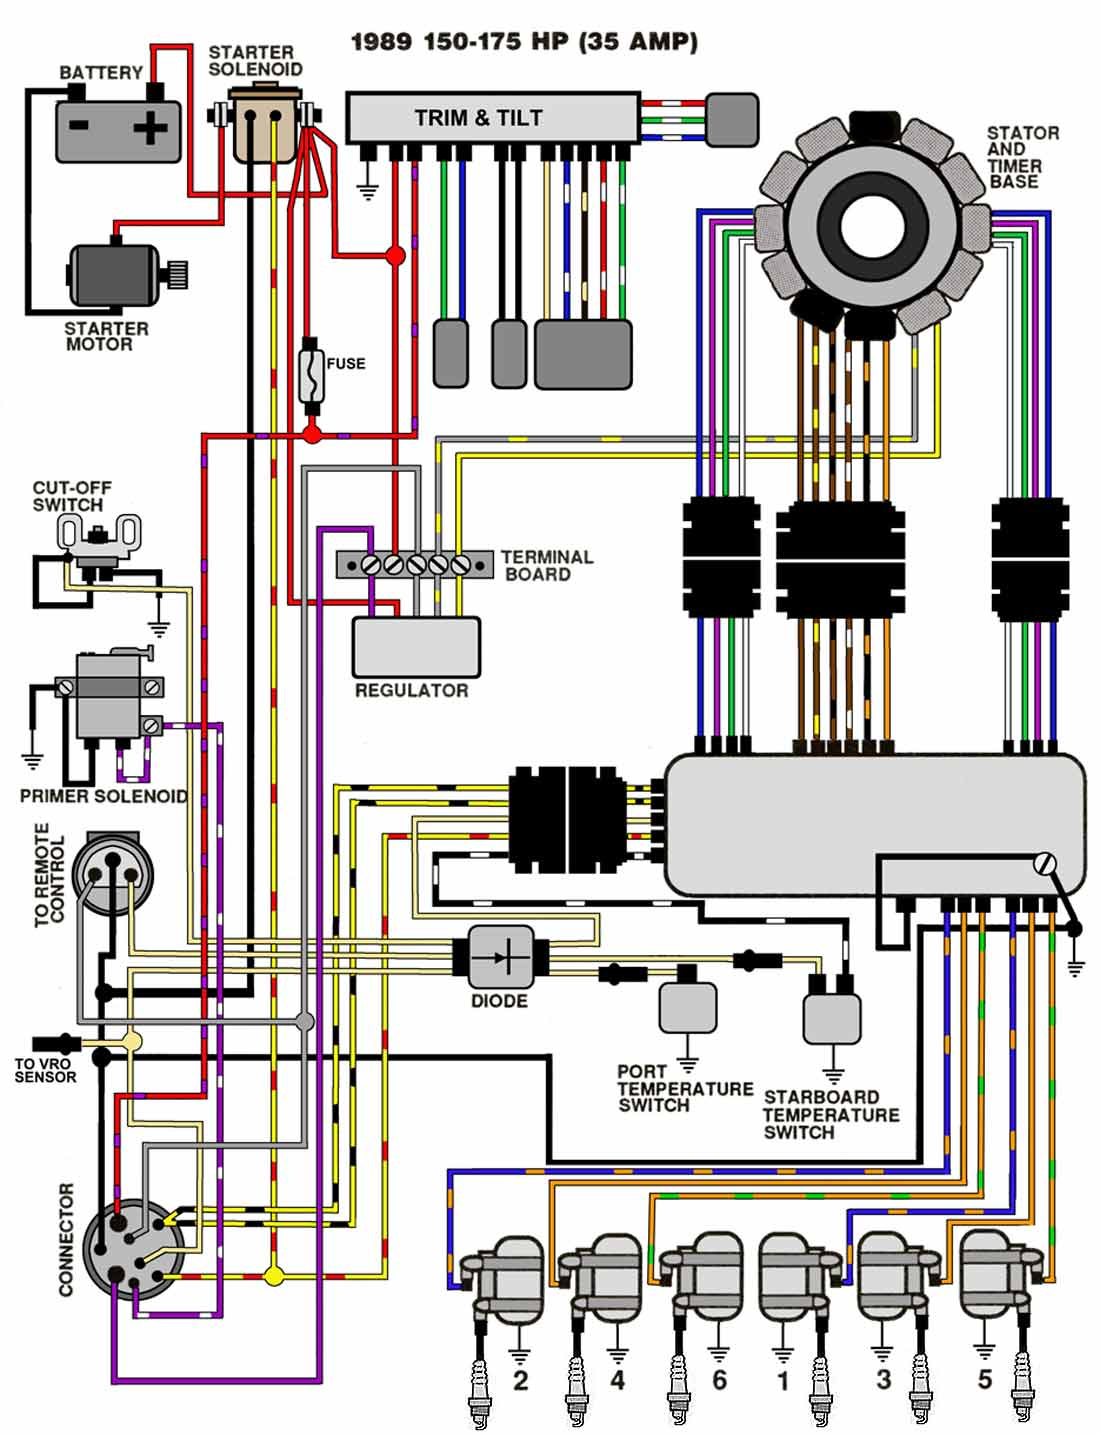 2010 06 02_024053_1989_89_150_175_35A i need a wiring diagram for a 2000 ocean pro 150 hp starter johnson outboard tach wiring diagram at gsmx.co